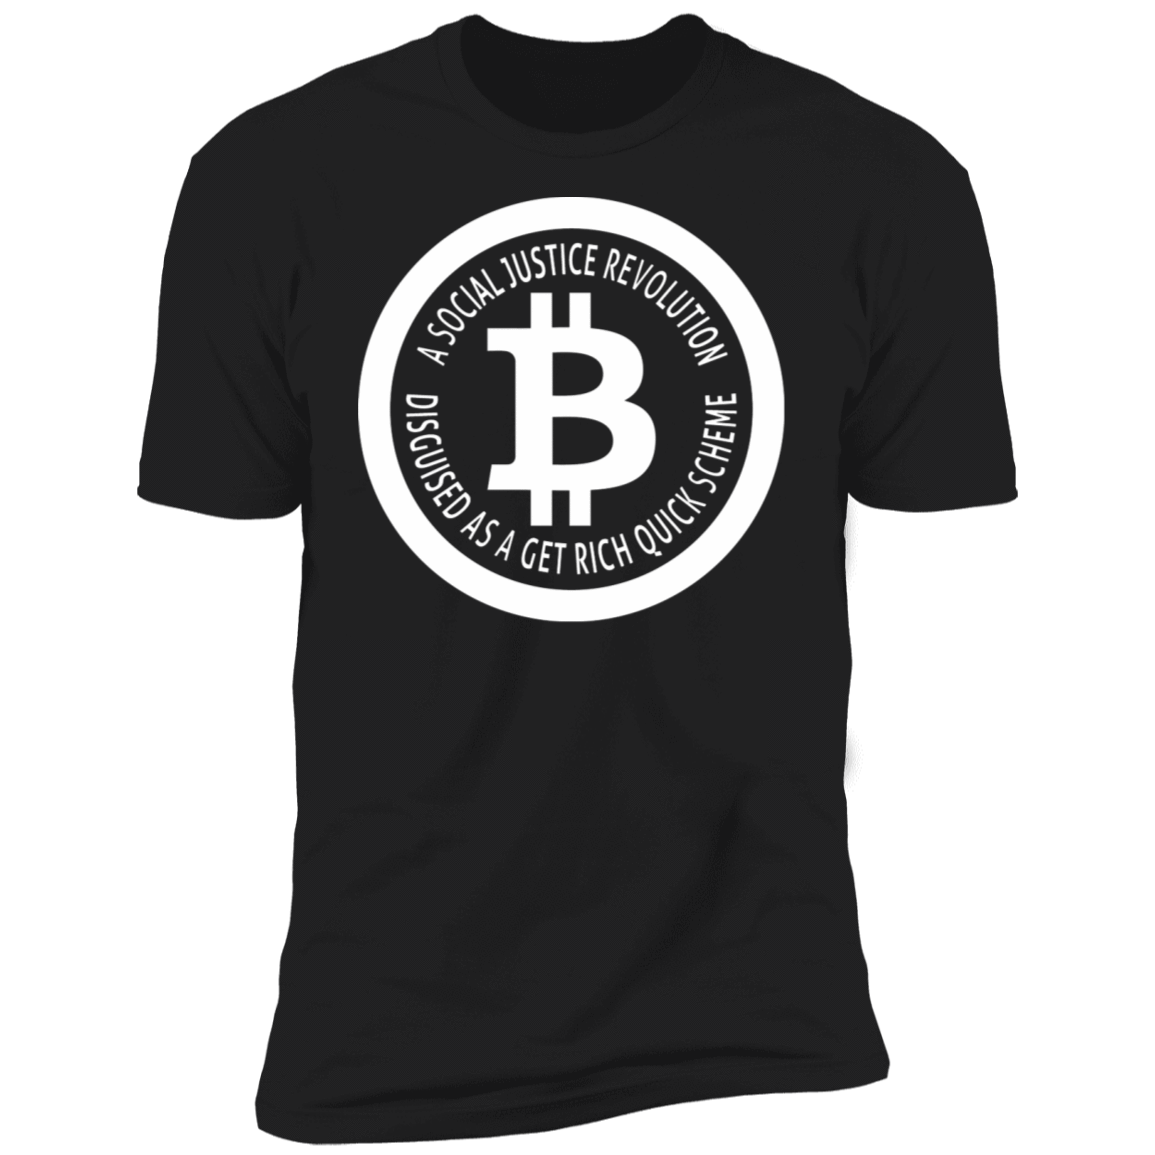 Bitcoin T shirt Black / X-Small A Social Justice Revolution T-Shirt